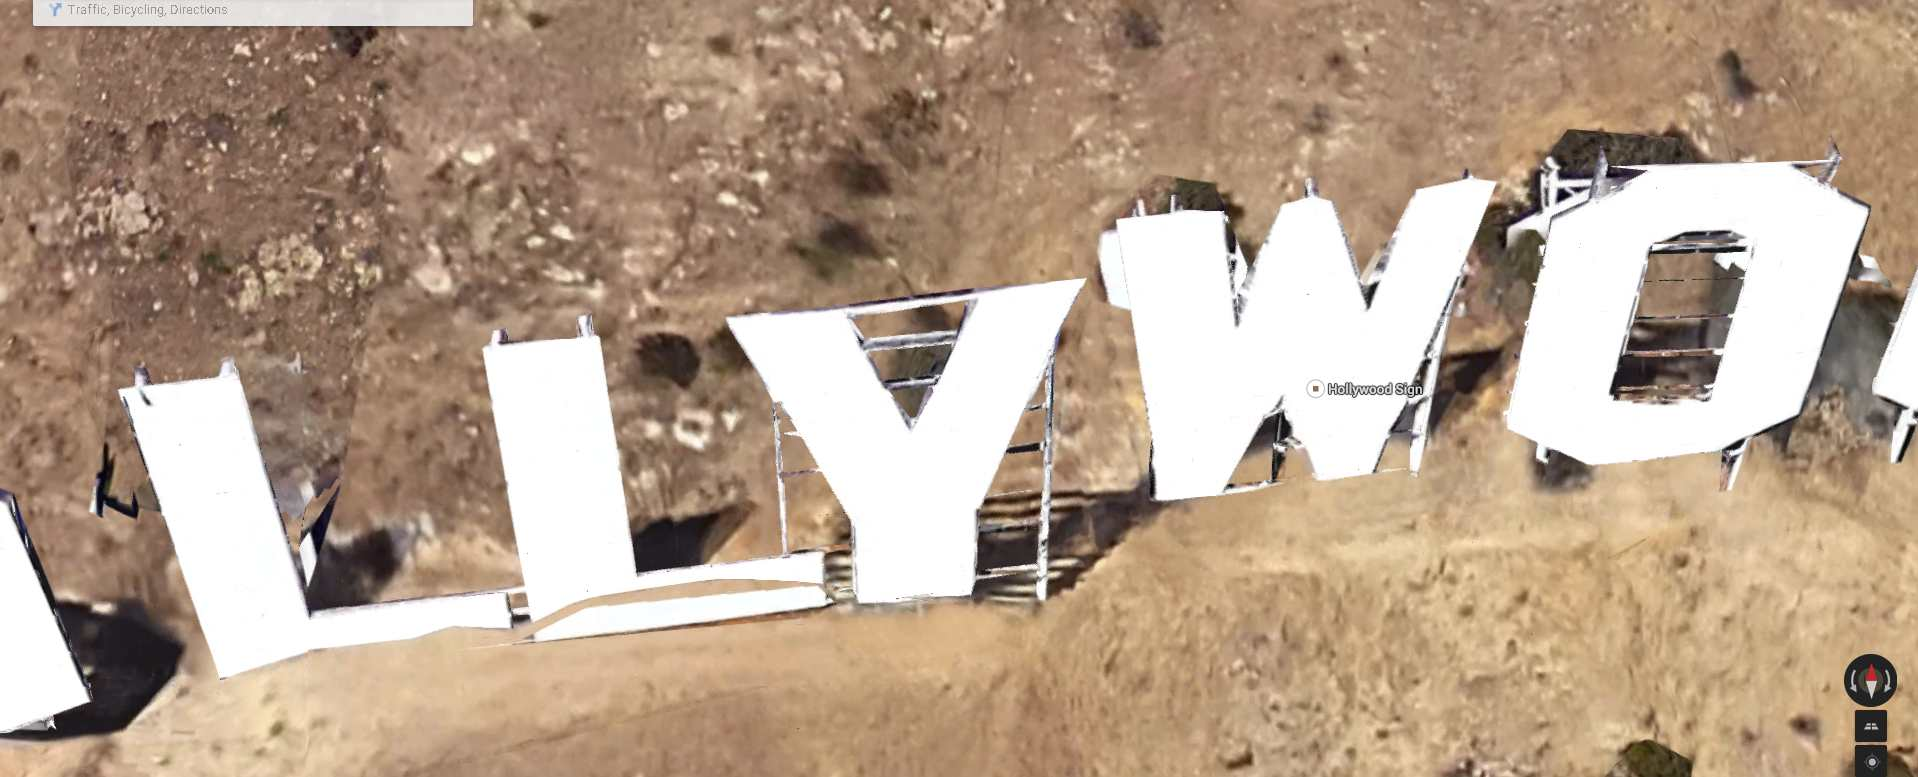 Hollywood Sign March 12 2015 Google Satellite Overhead Tilt View large